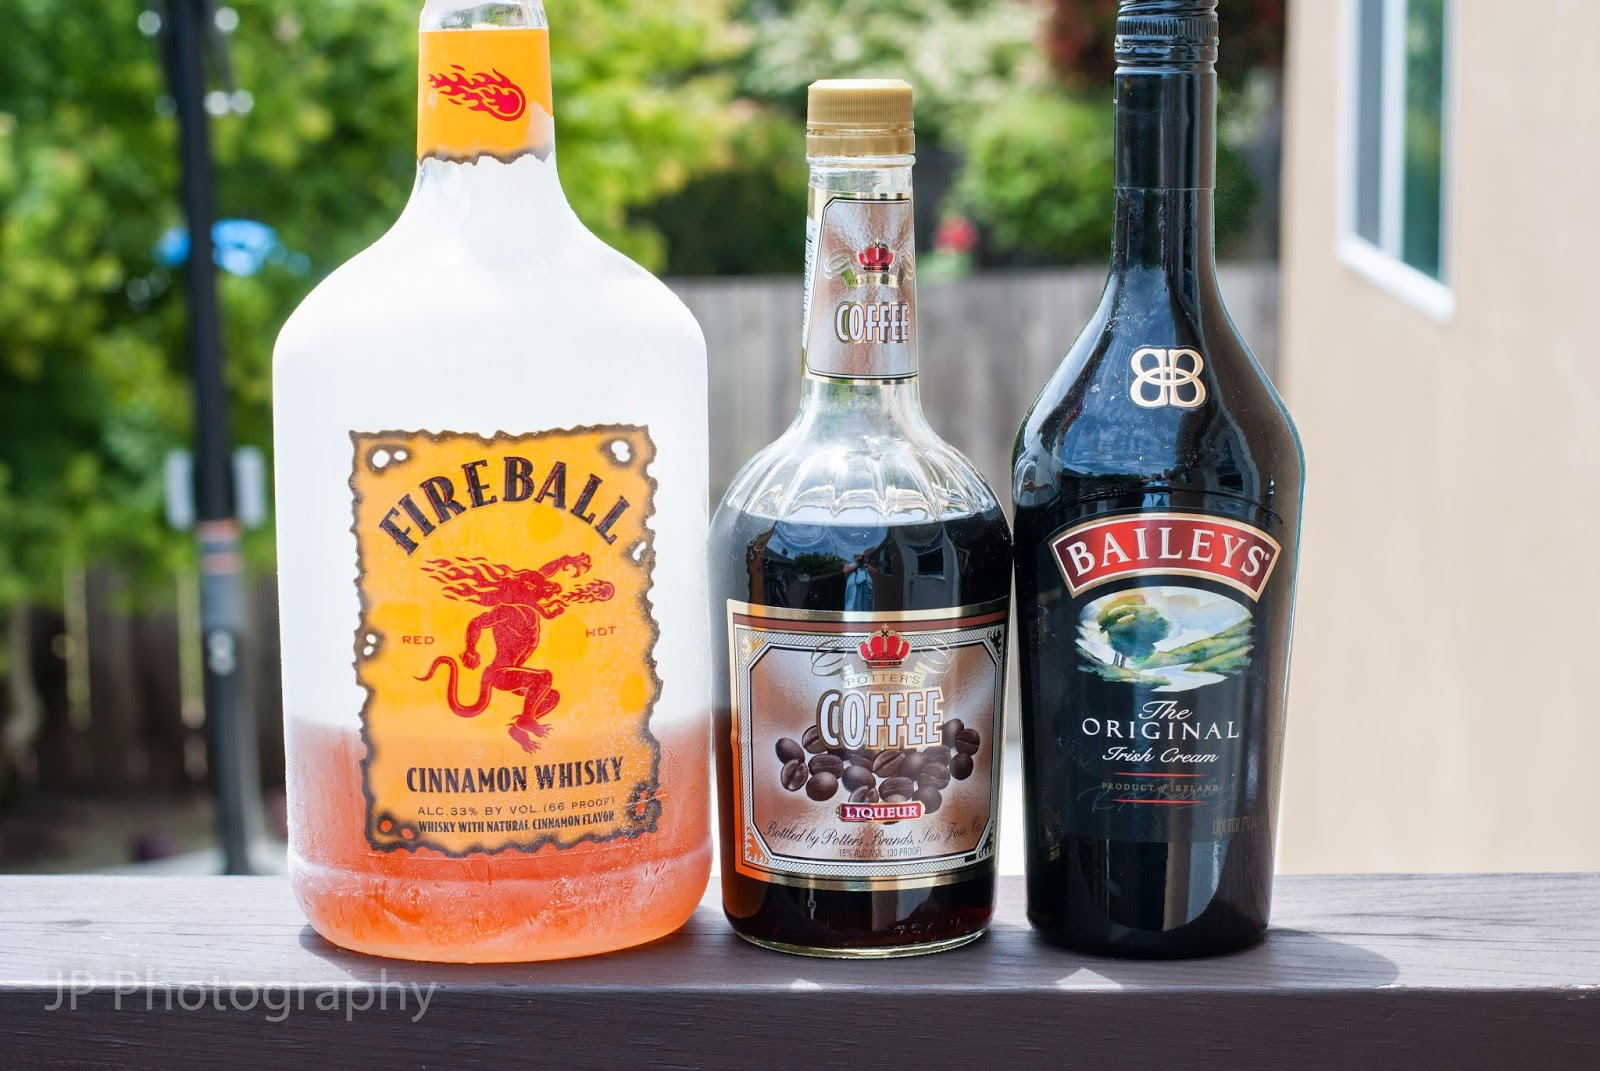 cinnamon latte, cocktail, fireball whisky, cinnamon whisky, coffee liqueur, baileys irish cream liqueur